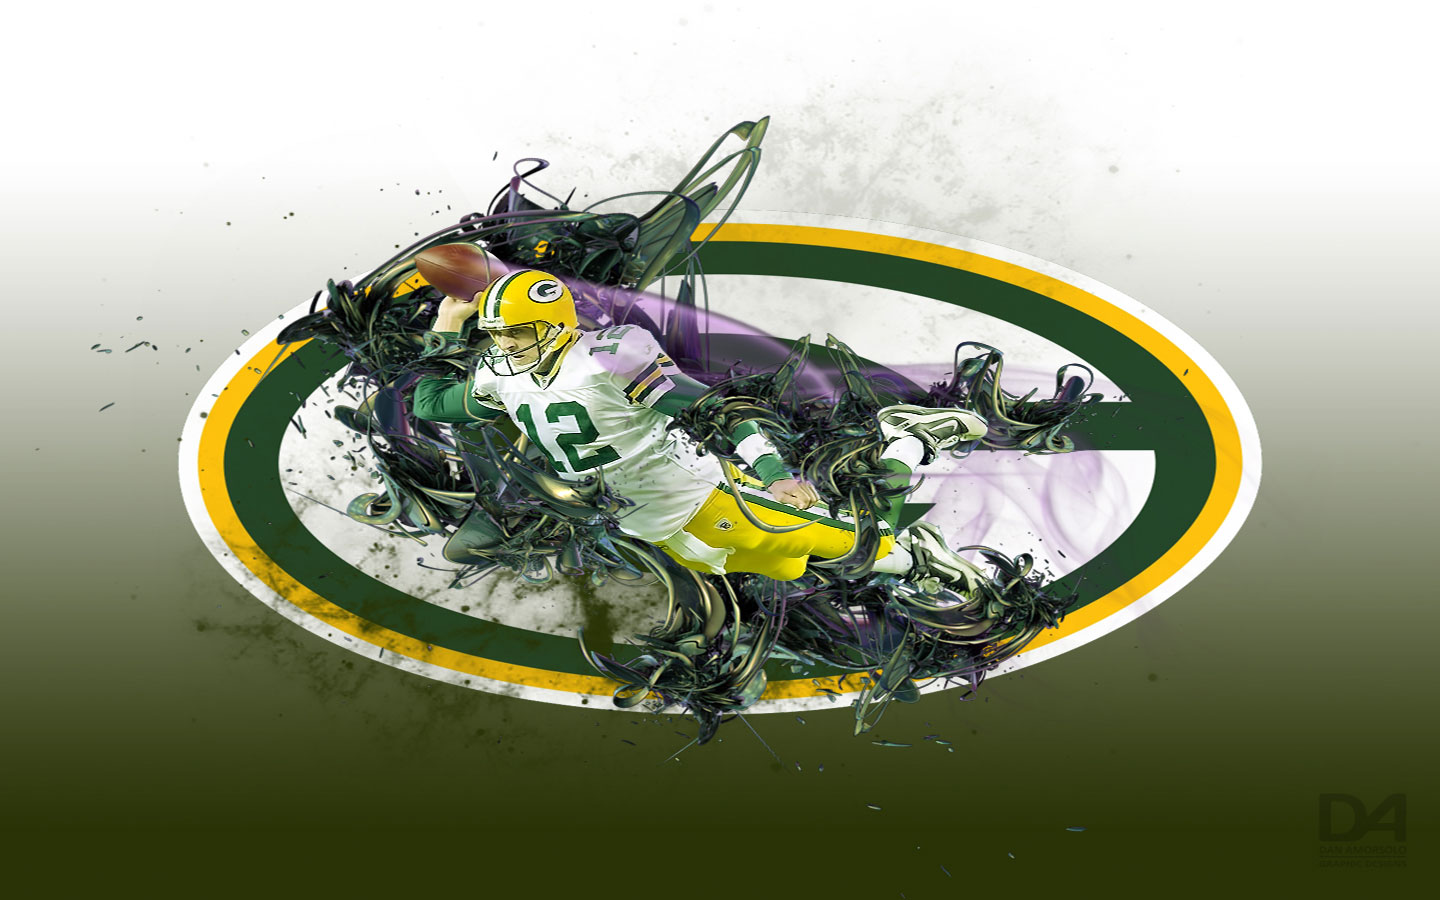 Green Bay Packers HD background Green Bay Packers wallpapers 1440x900